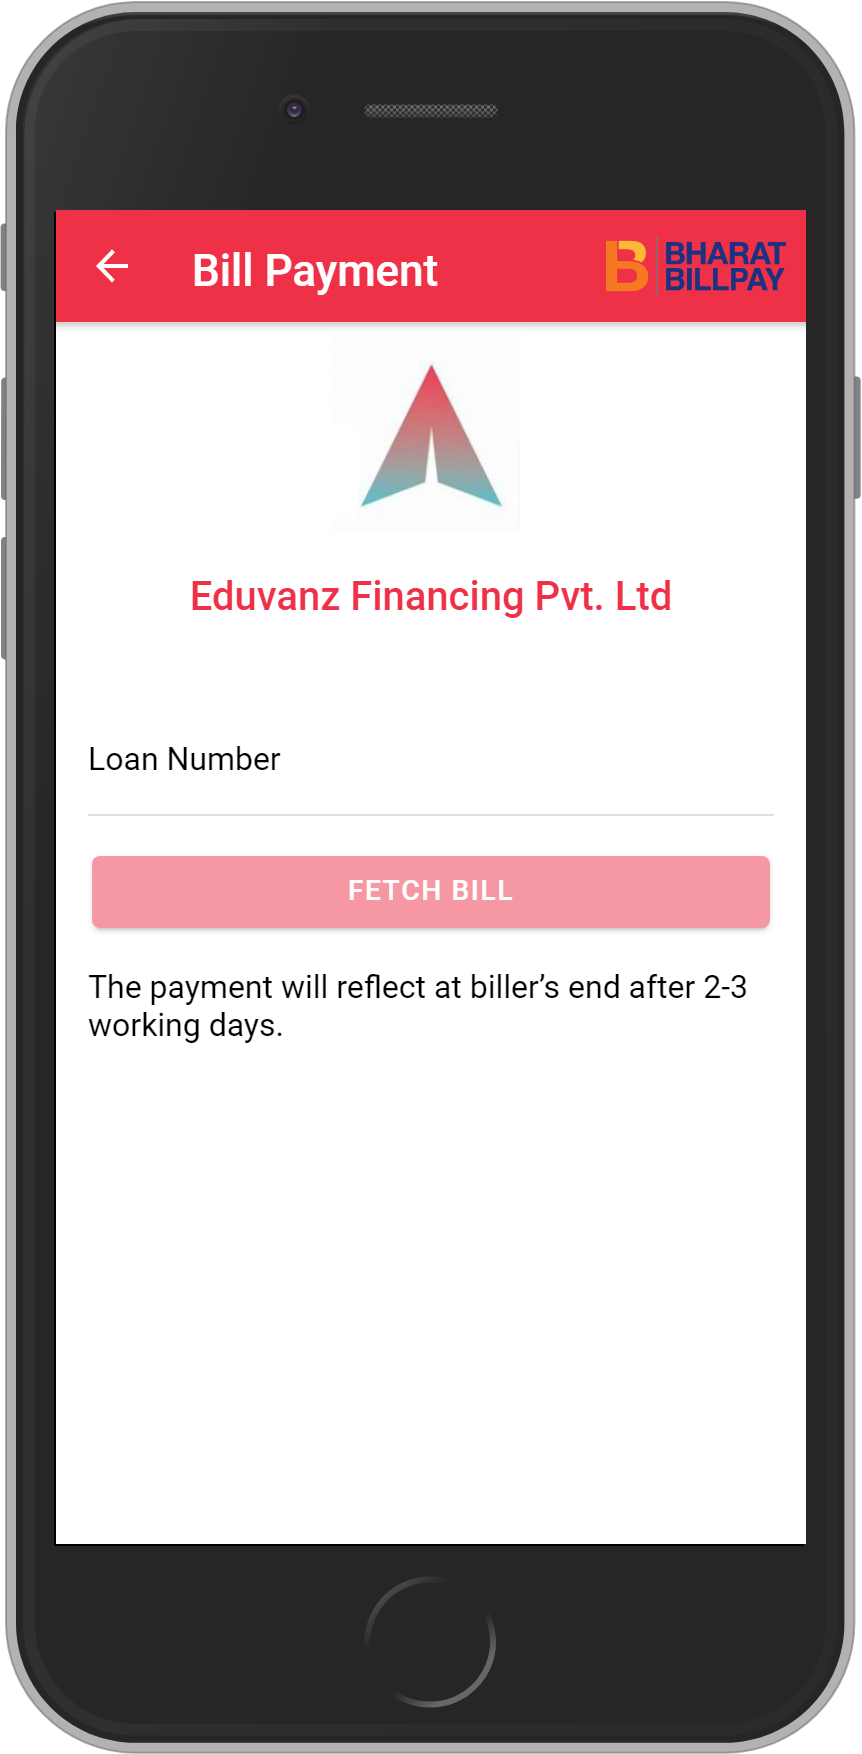 Get UNLIMITED <b>0.1%</b> CASHBACK on Eduvanz Financing Pvt. Ltd. Loan Payment.